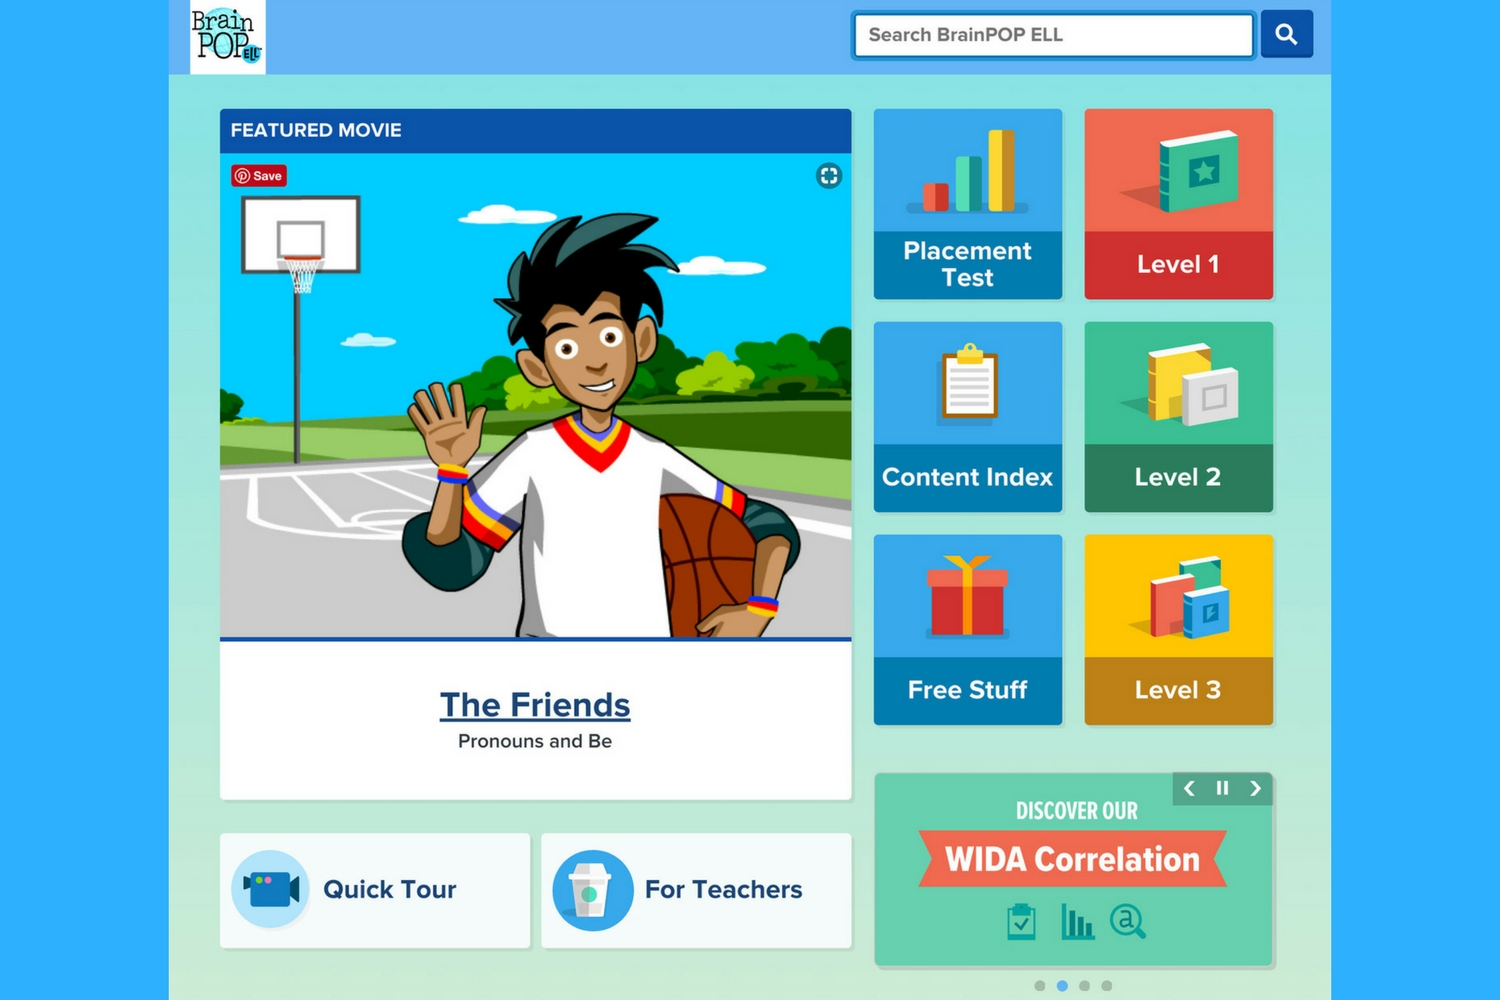 BrainPOP ELL home page